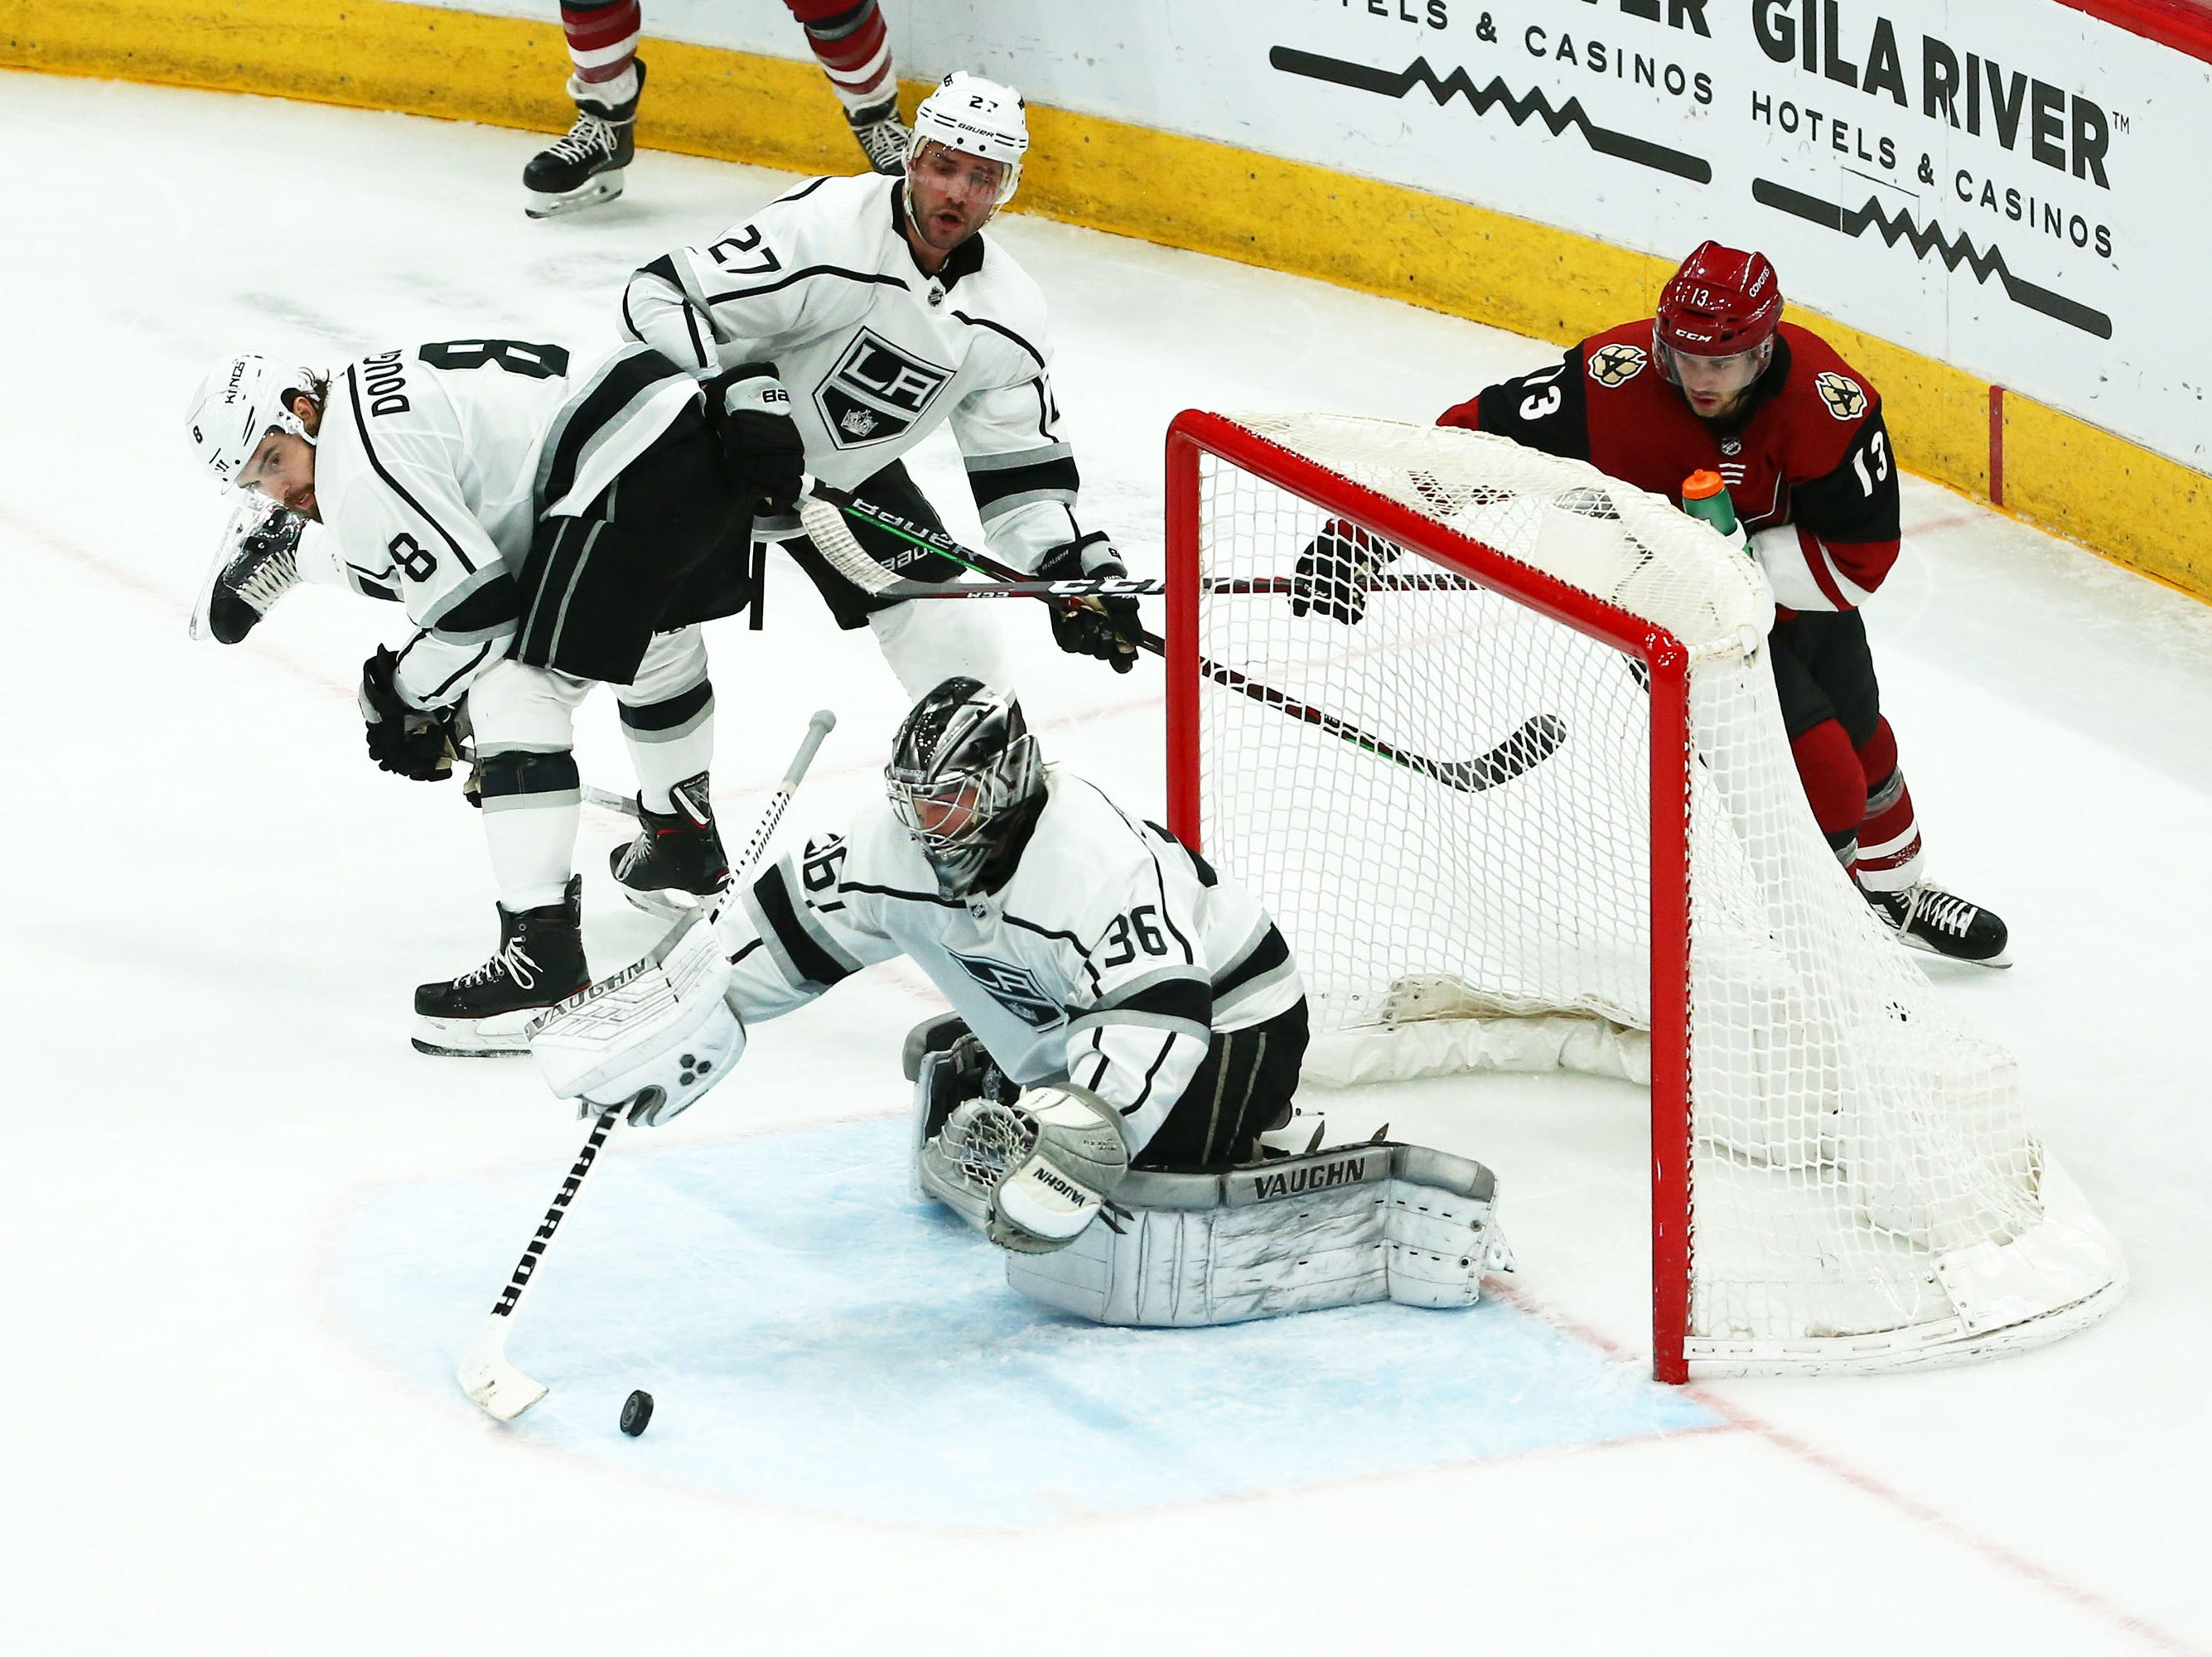 Los Angeles Kings goaltender Jack Campbell (36) blocks a shot by Arizona in the first period on Apr. 2, 2019 at Gila River Arena in Glendale, Ariz.